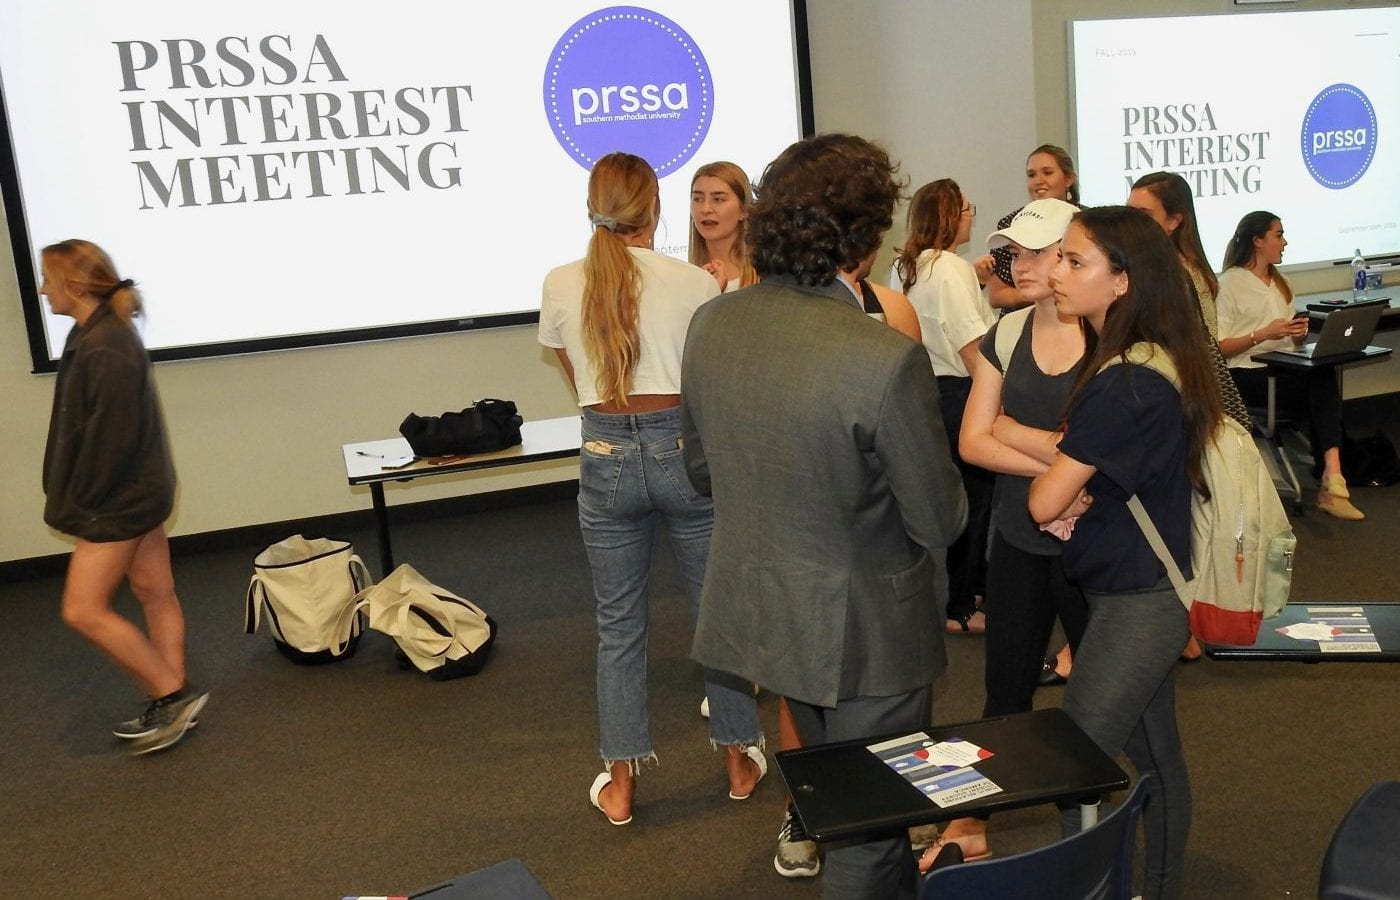 Students at the PRSSA Interest Meeting